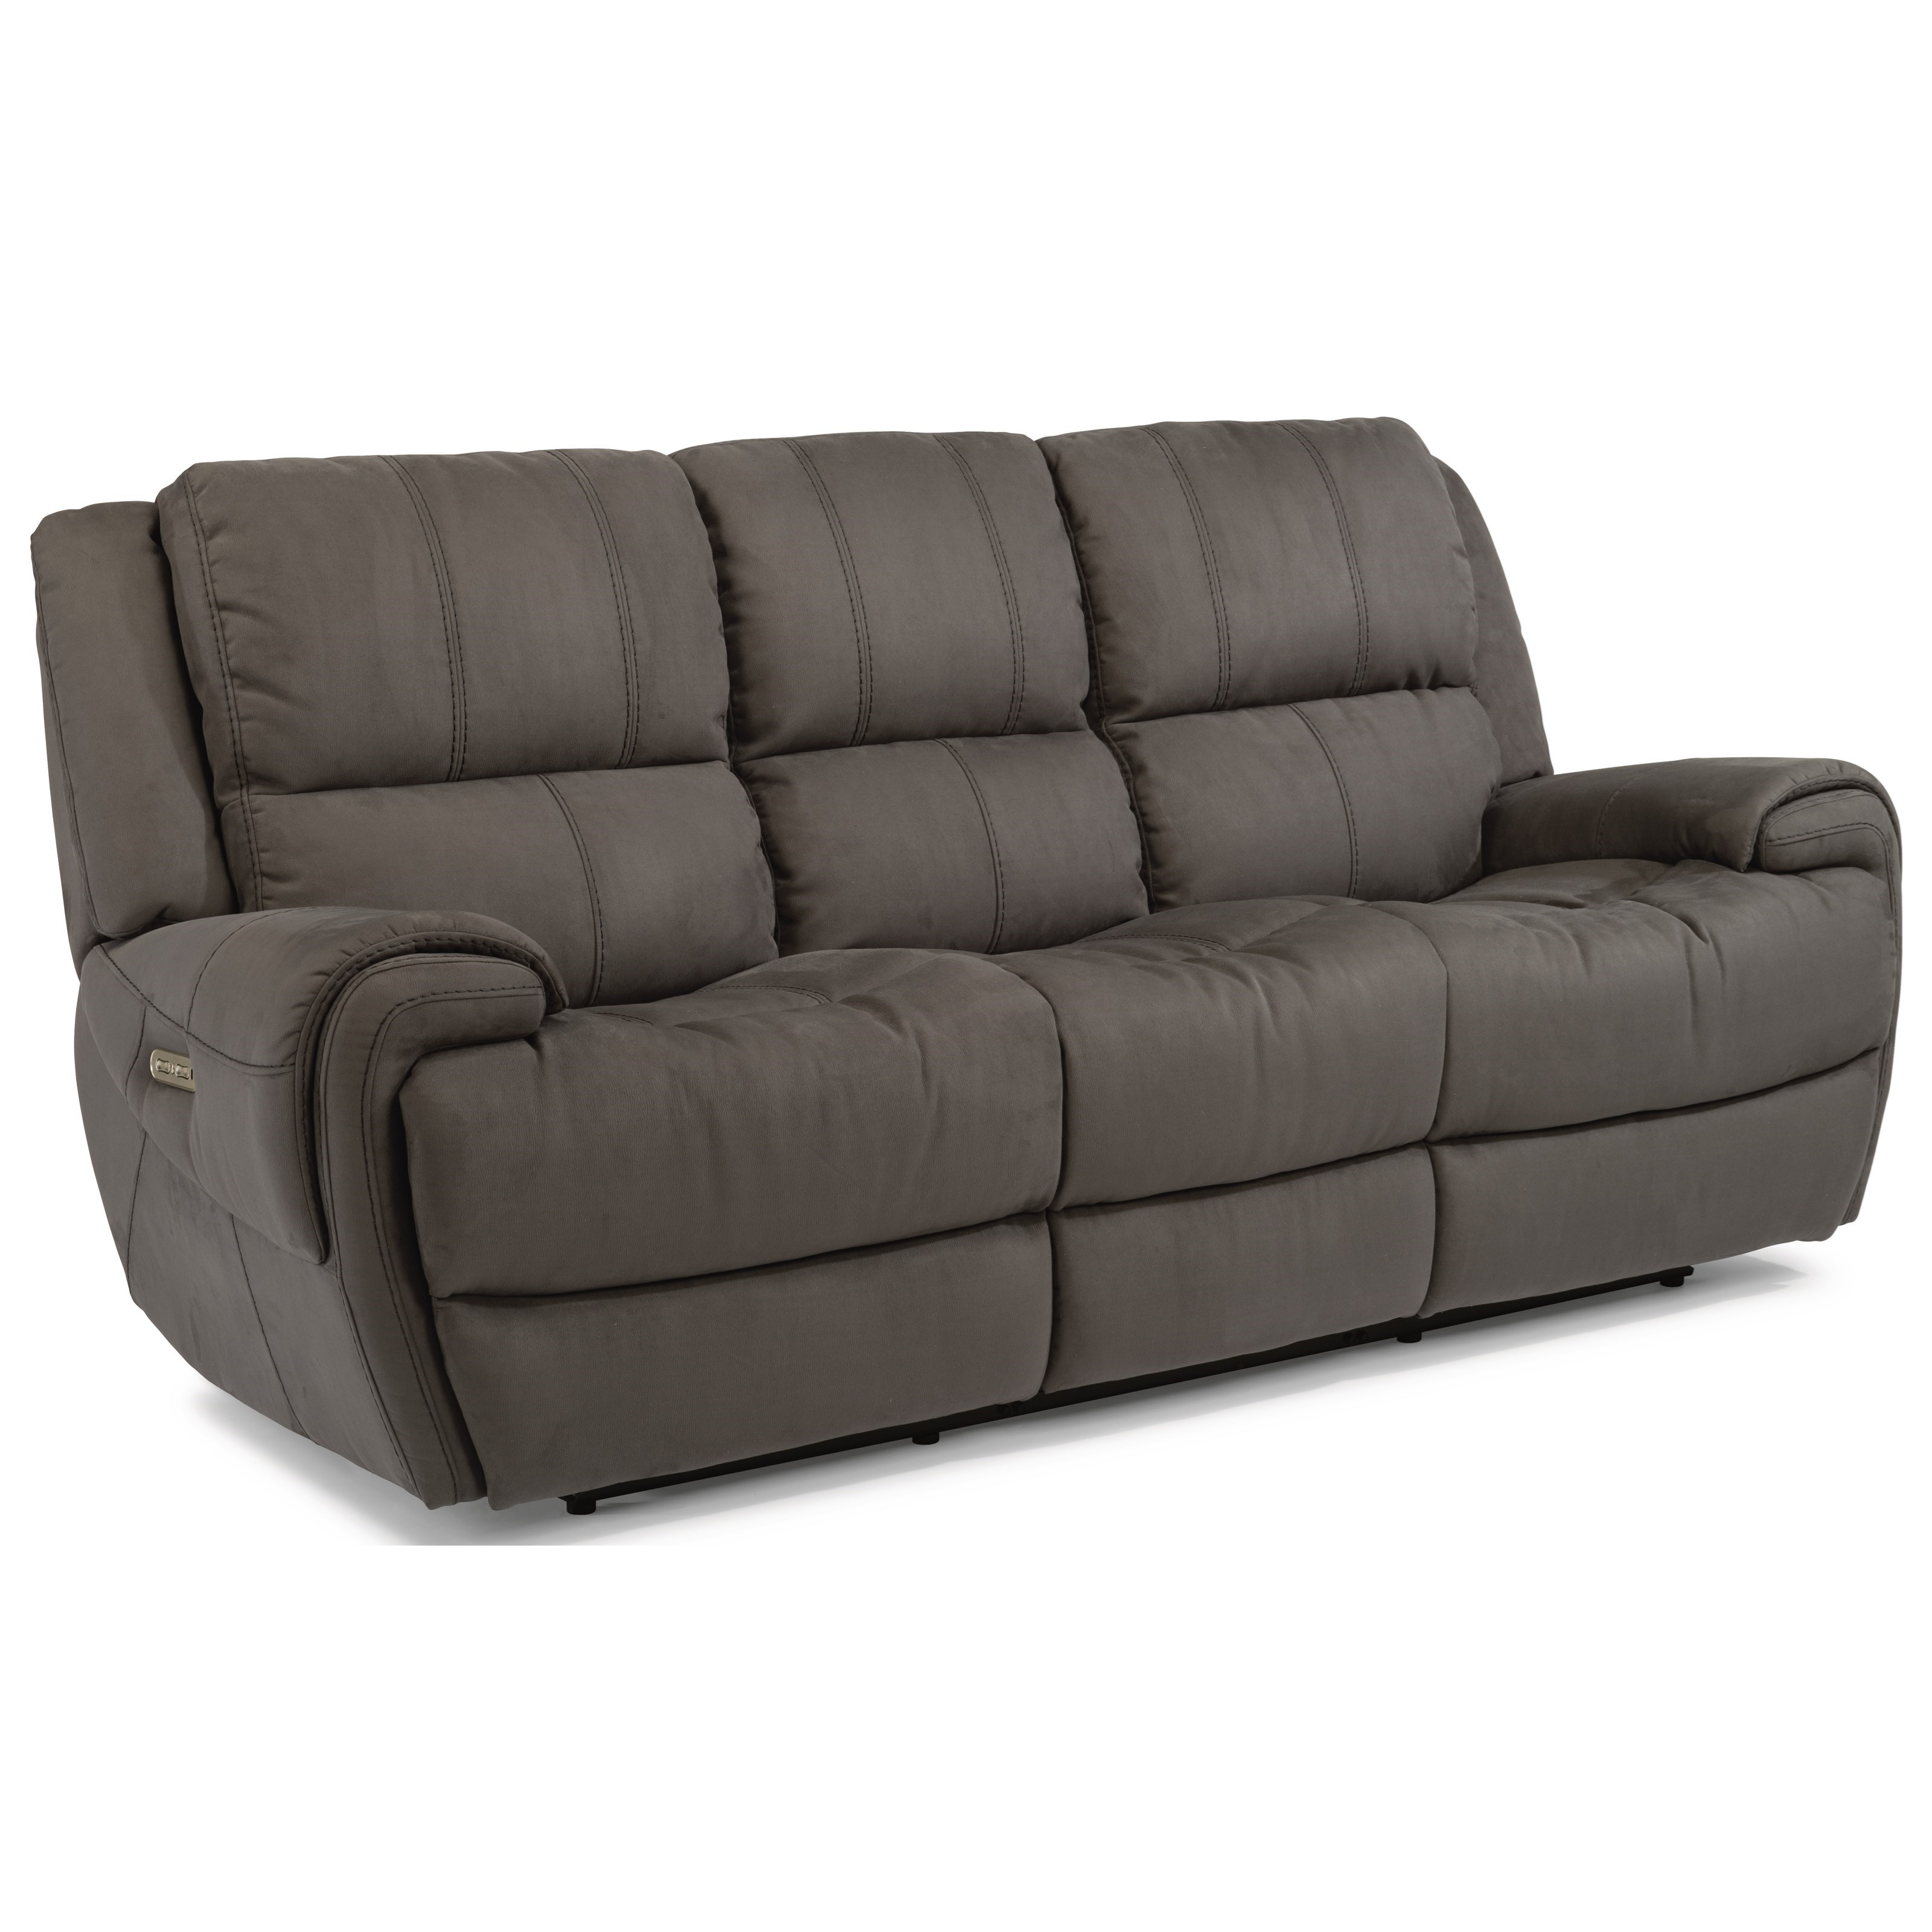 Flexsteel Latitudes Nance Casual Power Reclining Sofa With Power Headrests And Usb Ports Reeds Furniture Reclining Sofas